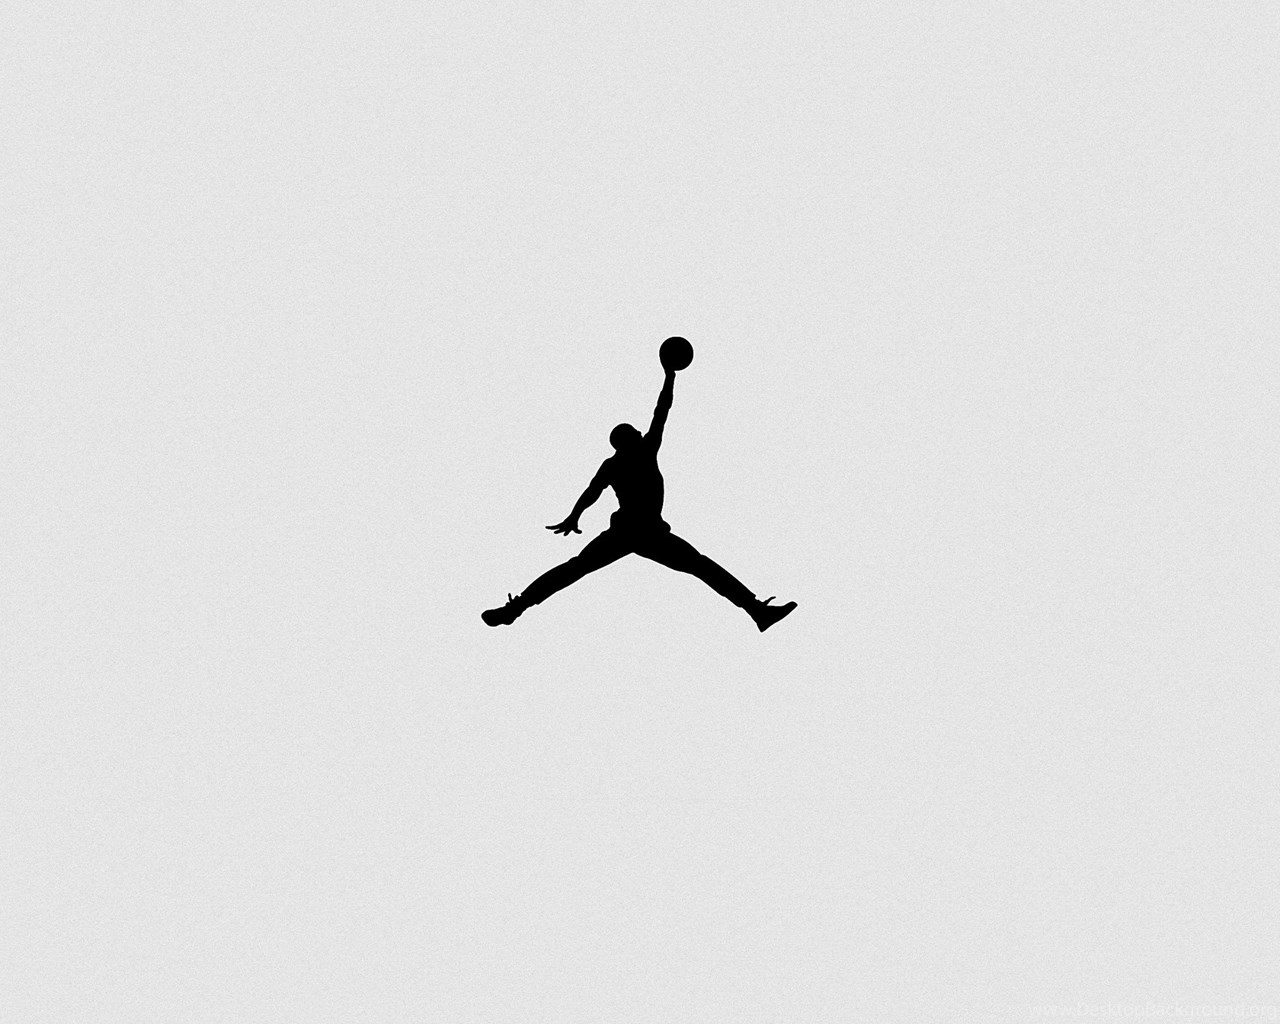 Air Jordan 11 Iphone Wallpapers Desktop Background